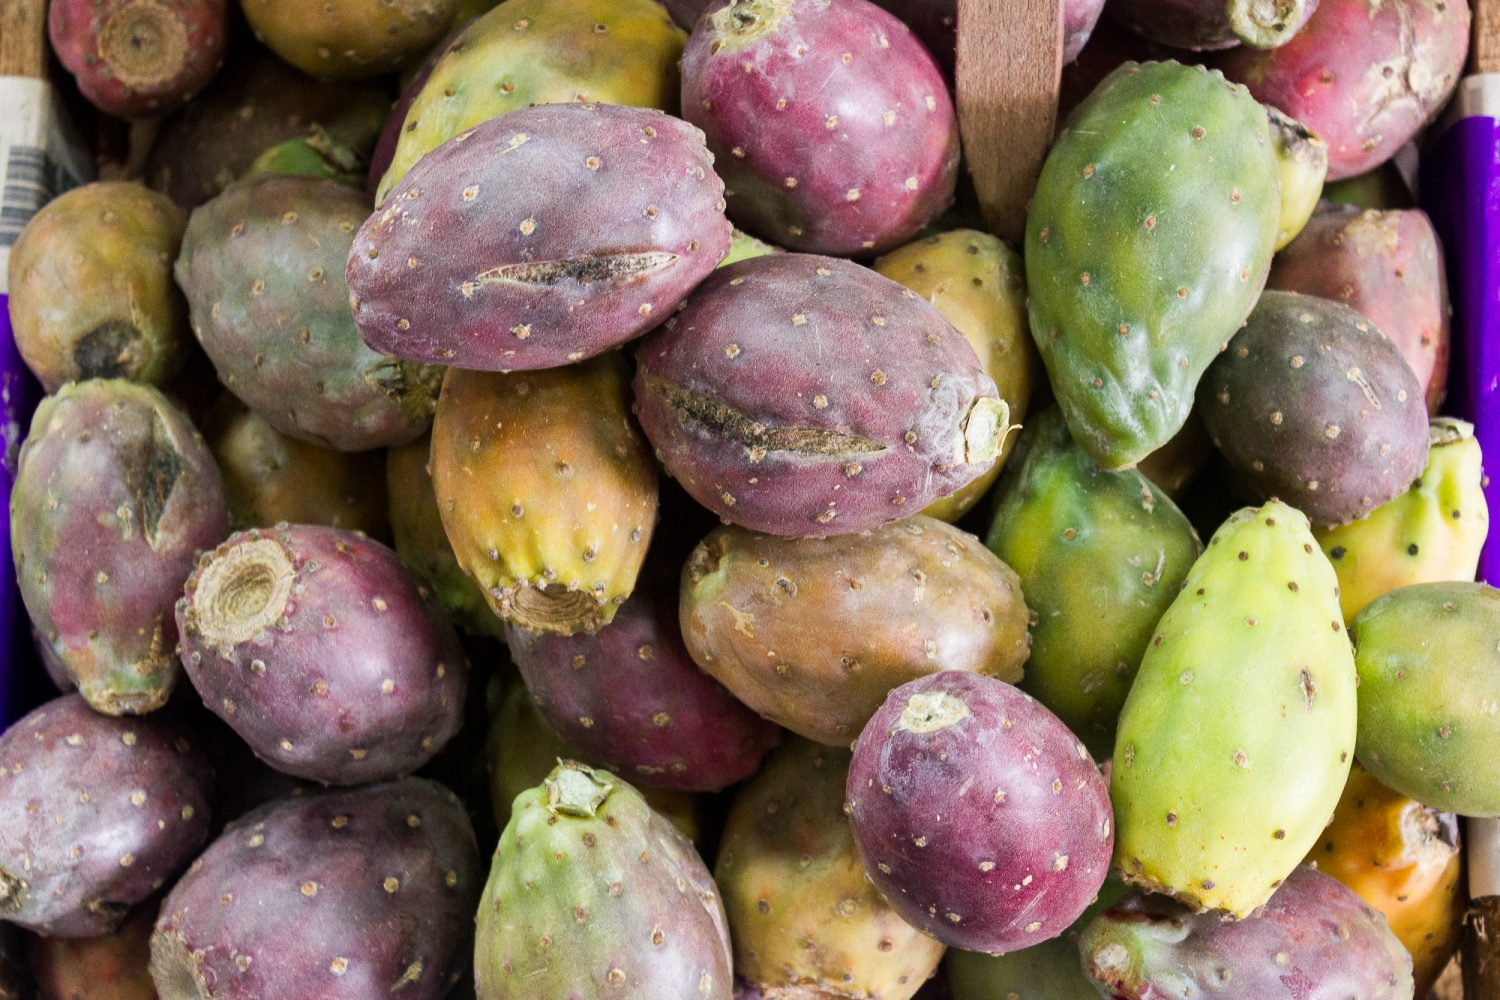 Unique Peruvian Fruit_Fruits to try in Peru Tuna Andina Prickly Pear_Eating Fruit in Peru